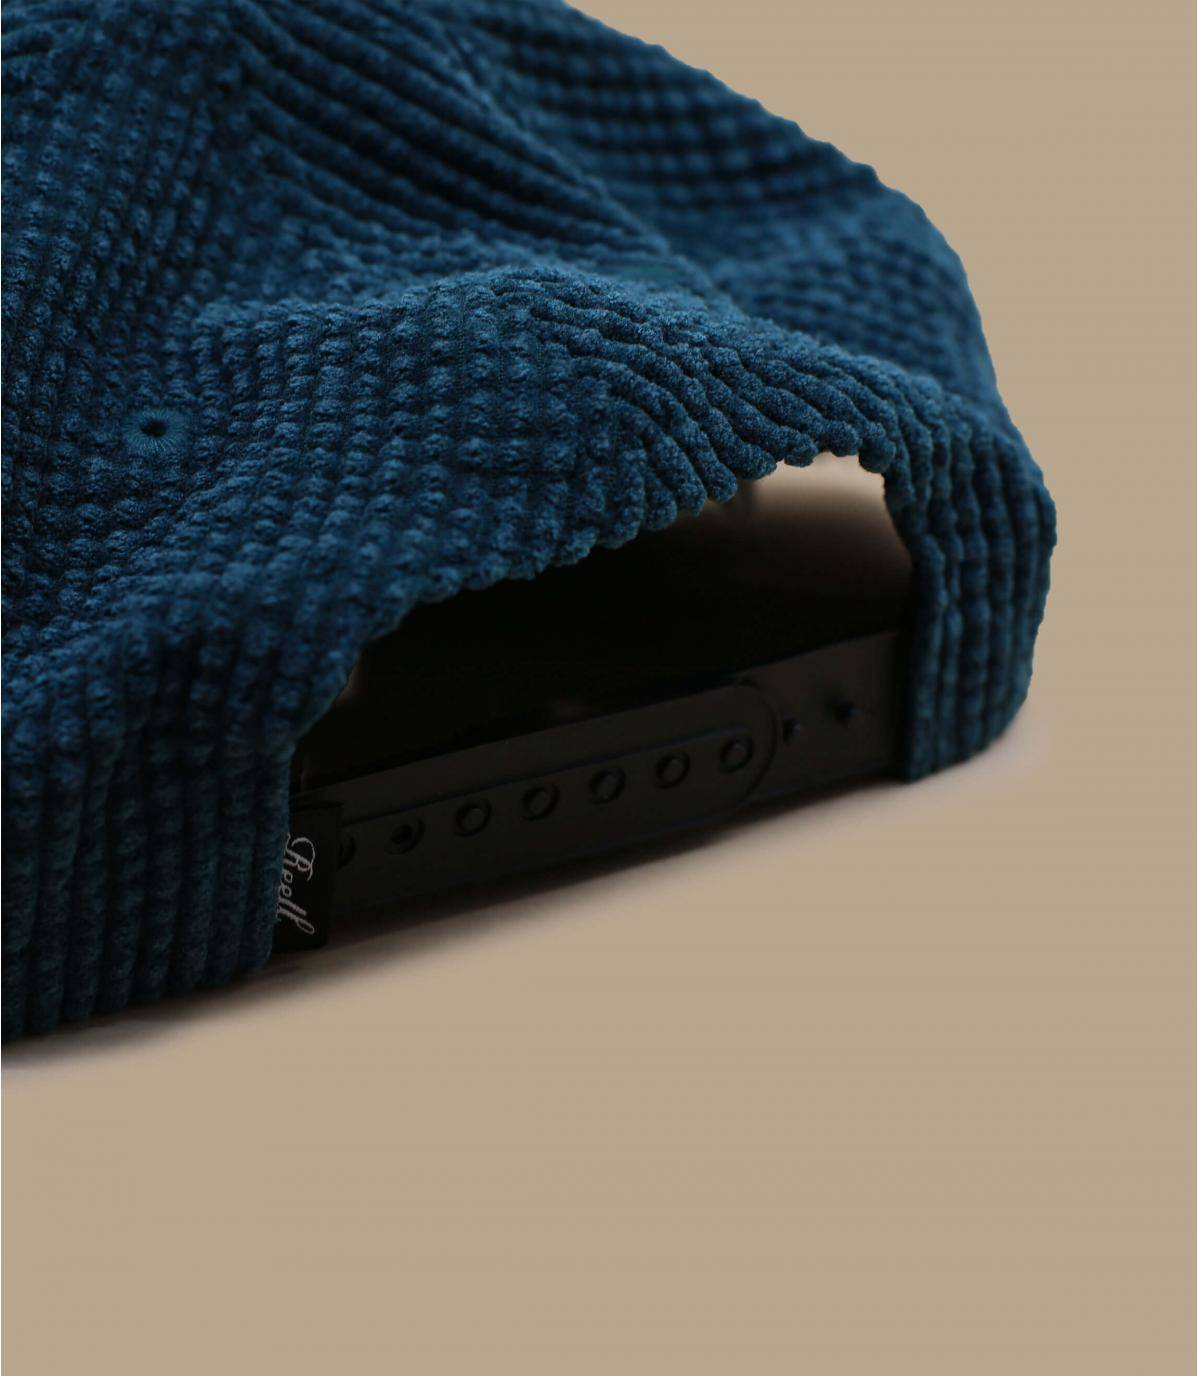 Details Suede Cap Cord forest green - afbeeling 4